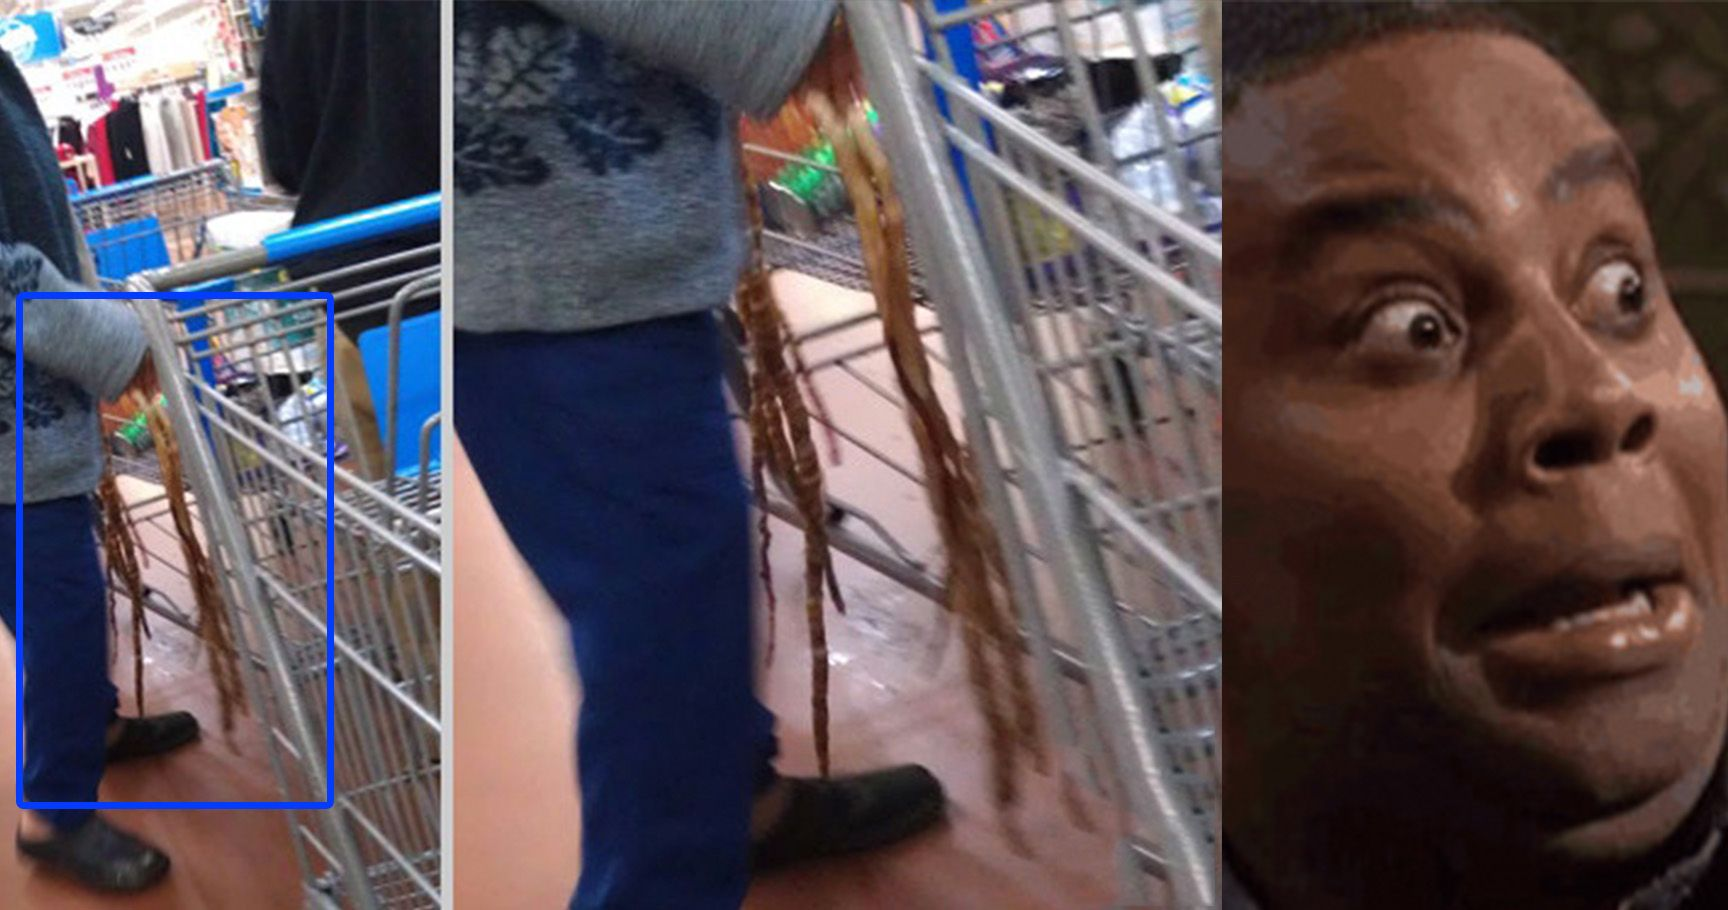 15 People Who Could Only Be Found In Walmart